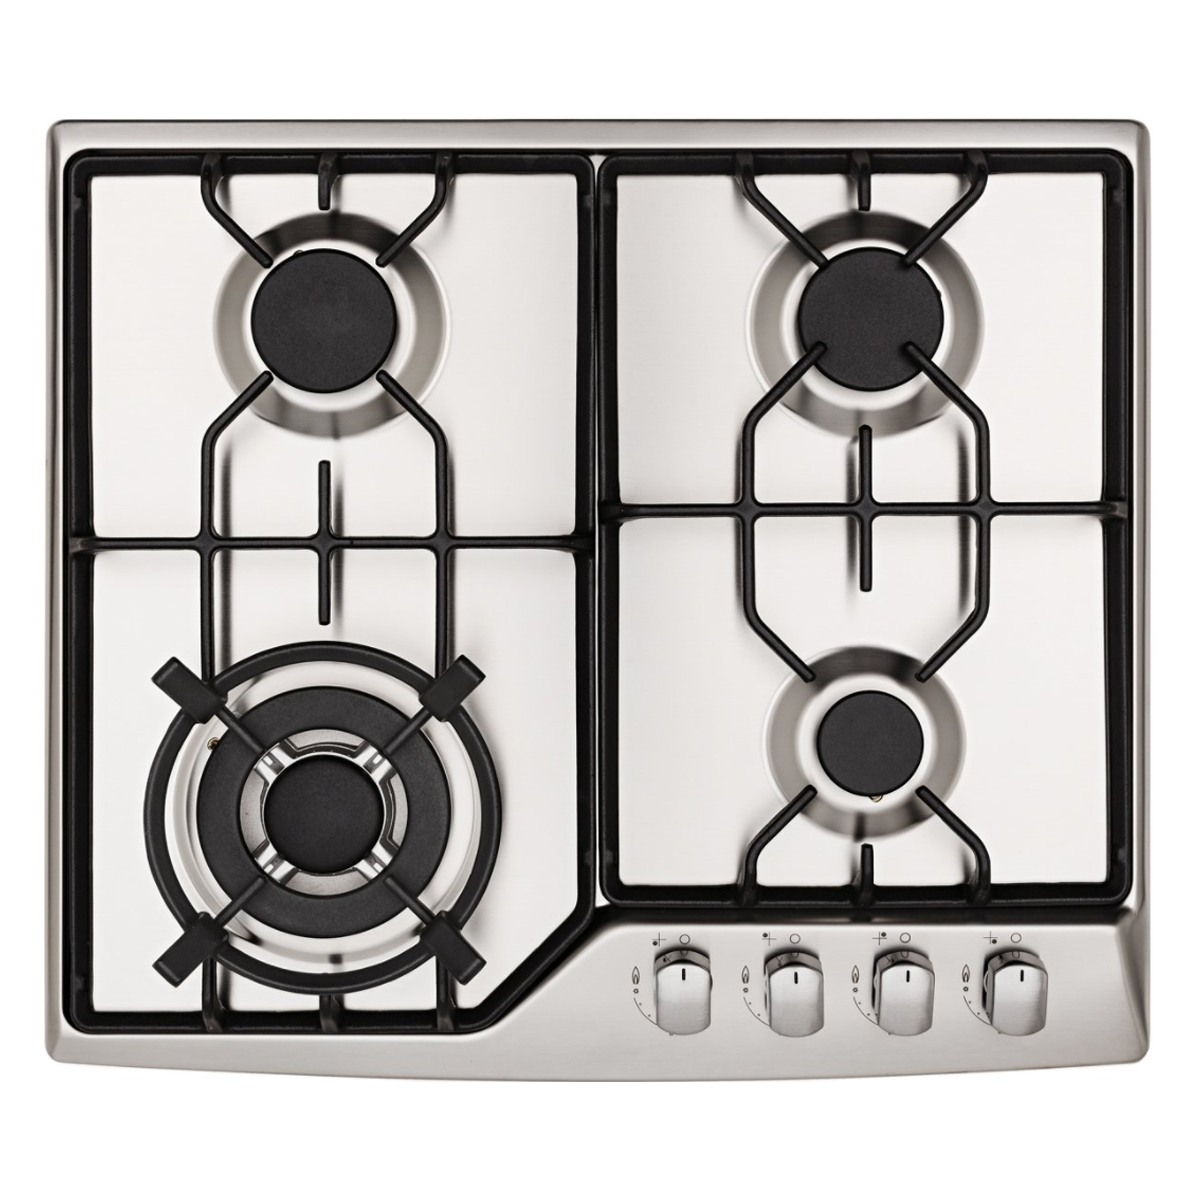 Arc CD6SG1 Gas Cooktop